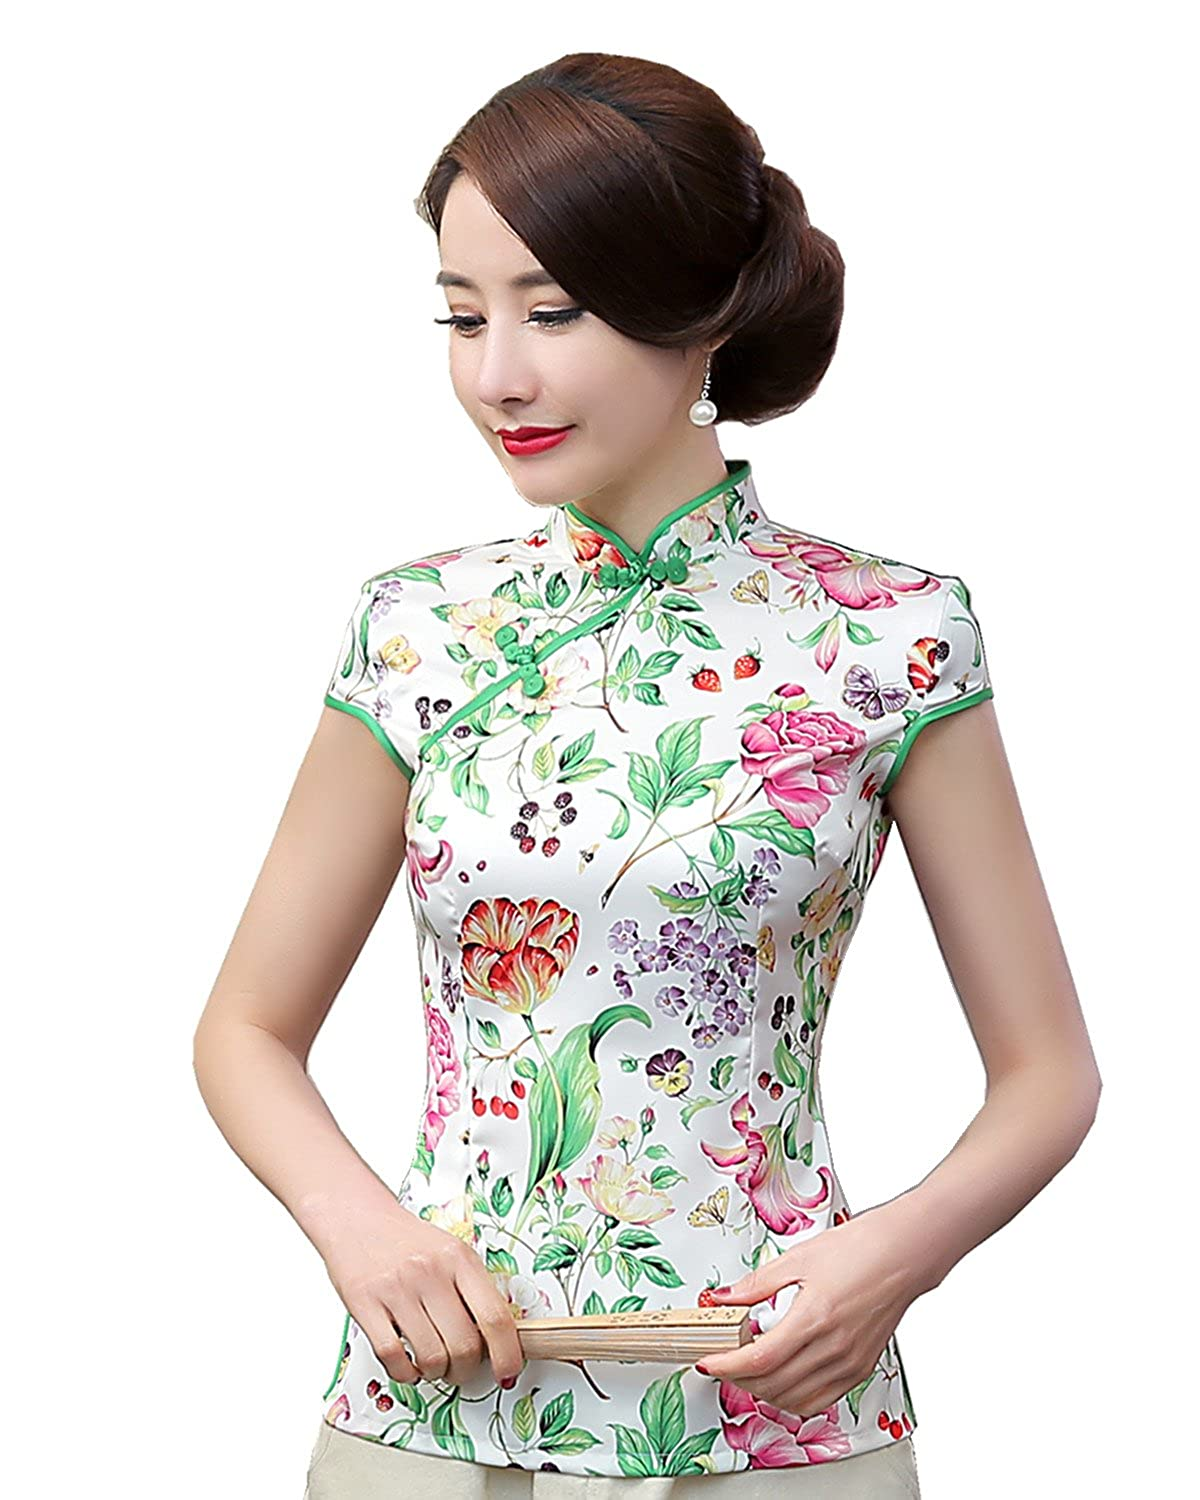 5c64c4b745312a We are Asia size which is usually 1 or 1.5 size smaller than US size  .Please check your measurements to make sure the item fits before ordering.